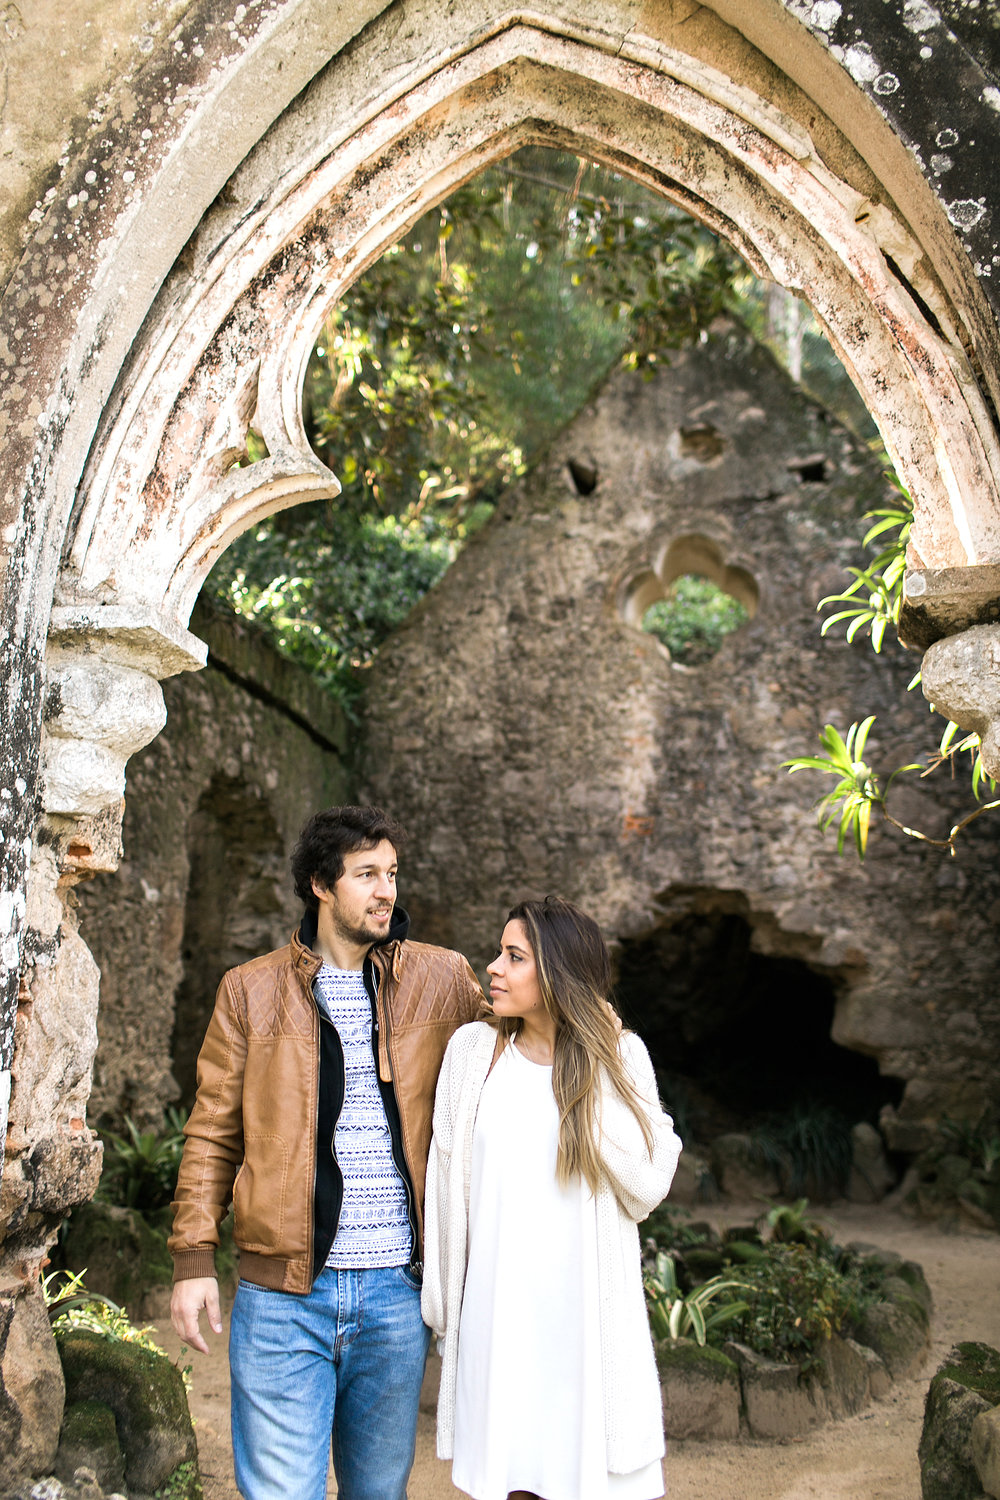 ANDREIA AND BRUNO - Sintra, Portugal